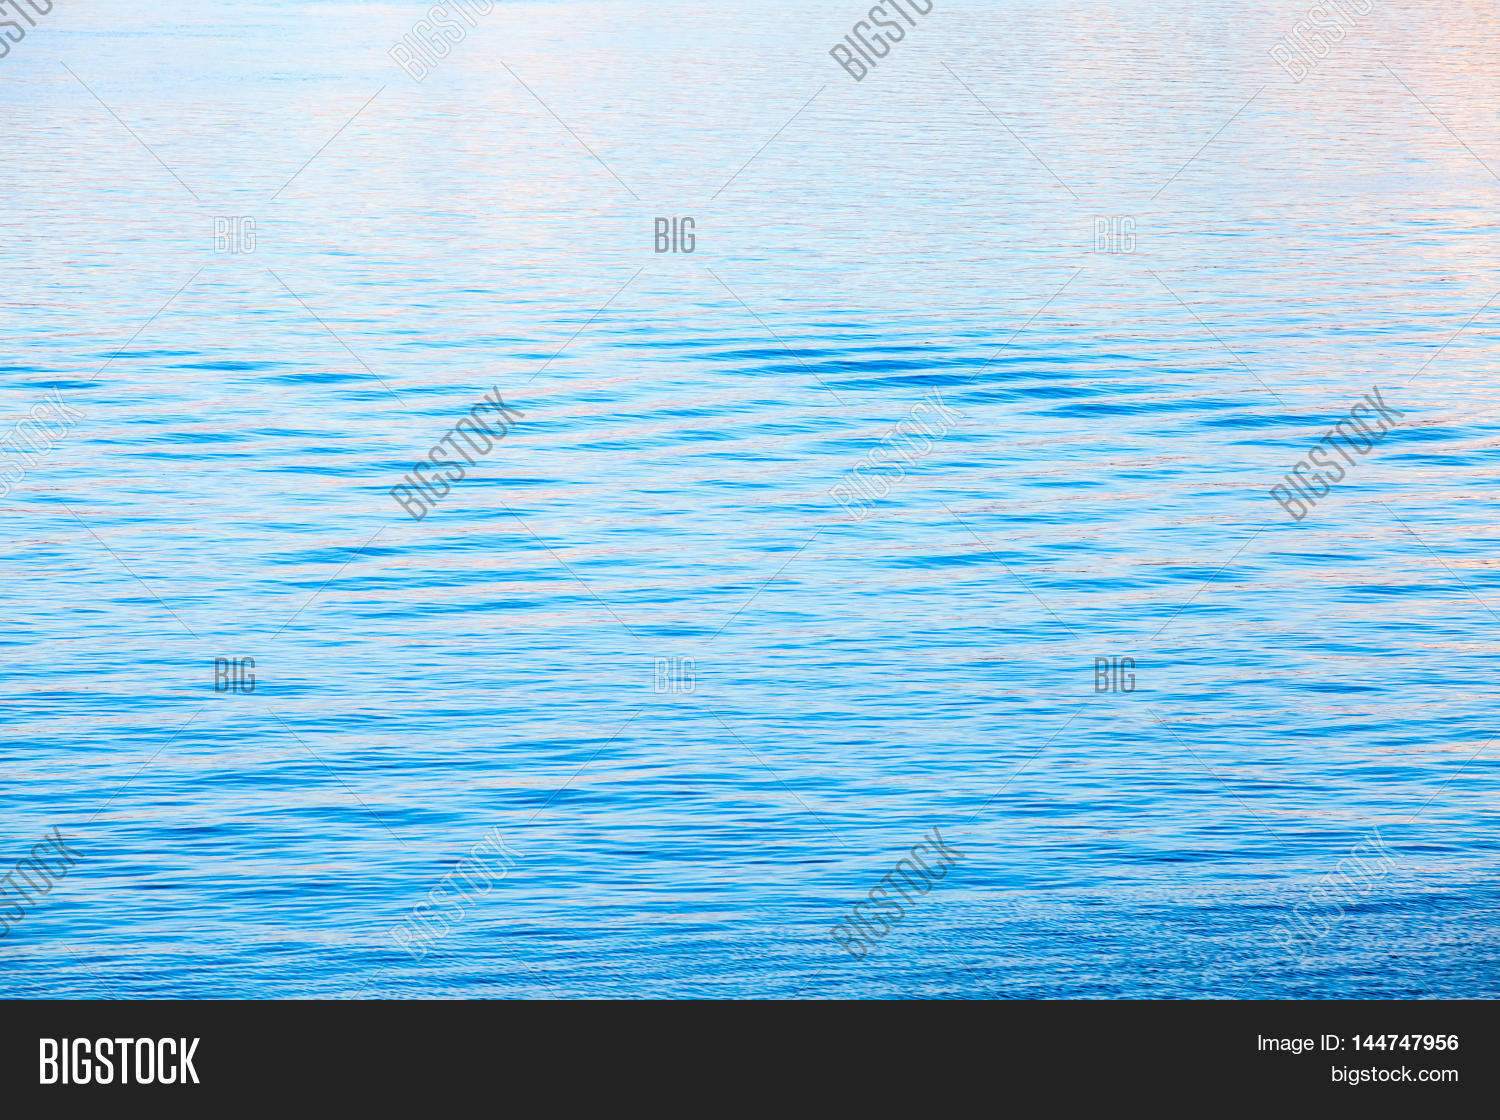 1366x768 blue sea surface-#31